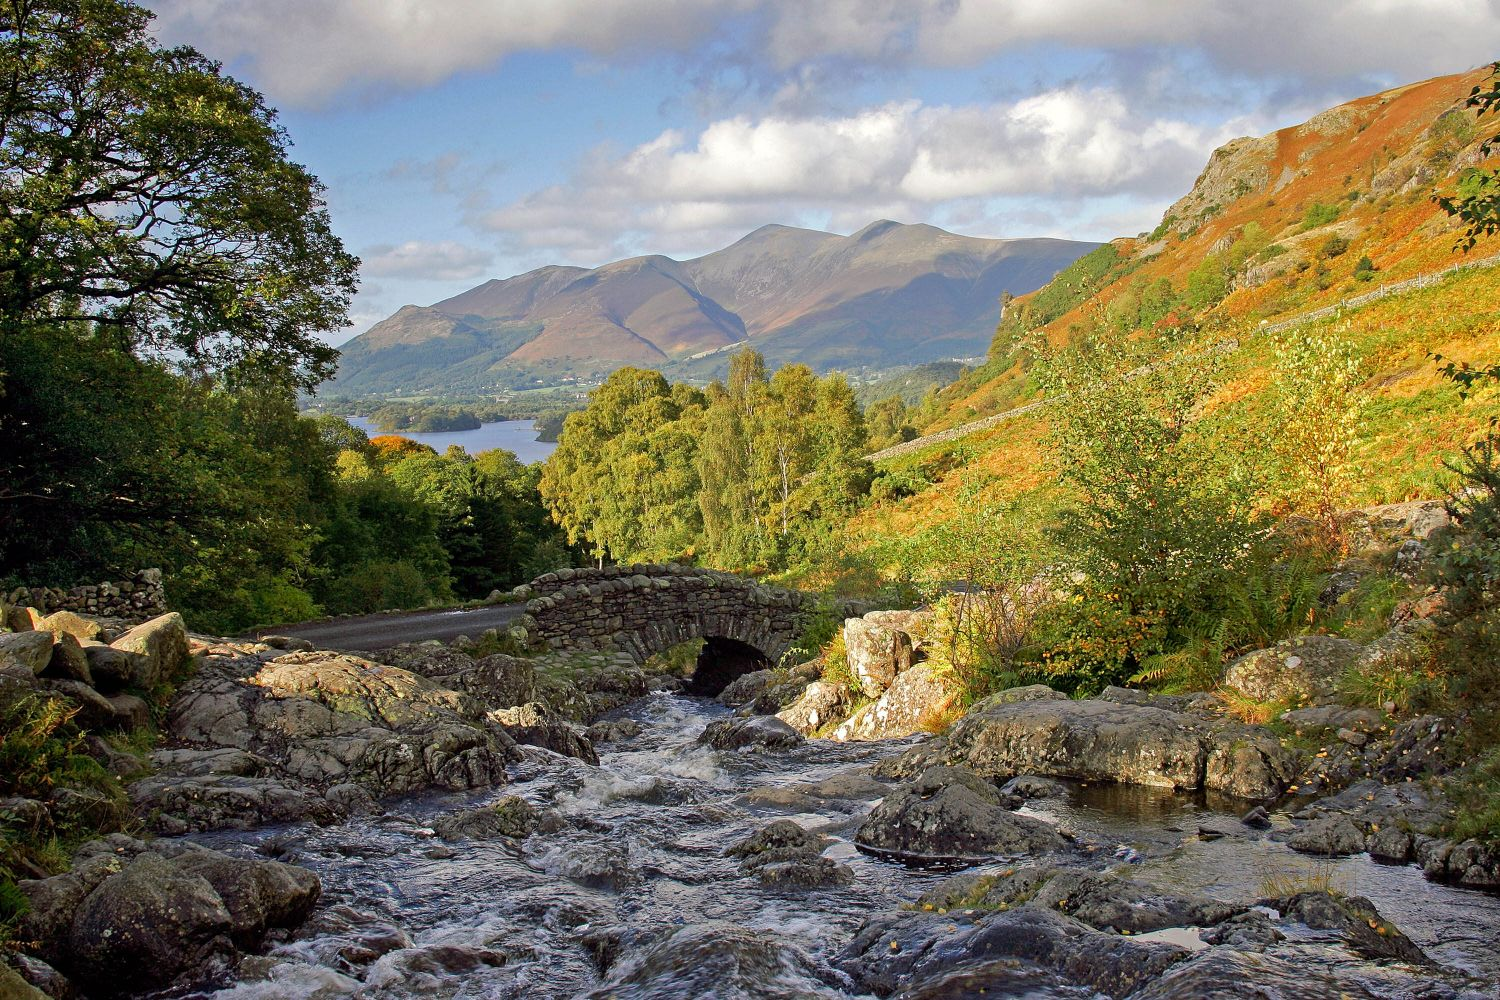 Autumn sunshine at Ashness Bridge, Derwentwater an iconic packhorse bridge in the English Lake District